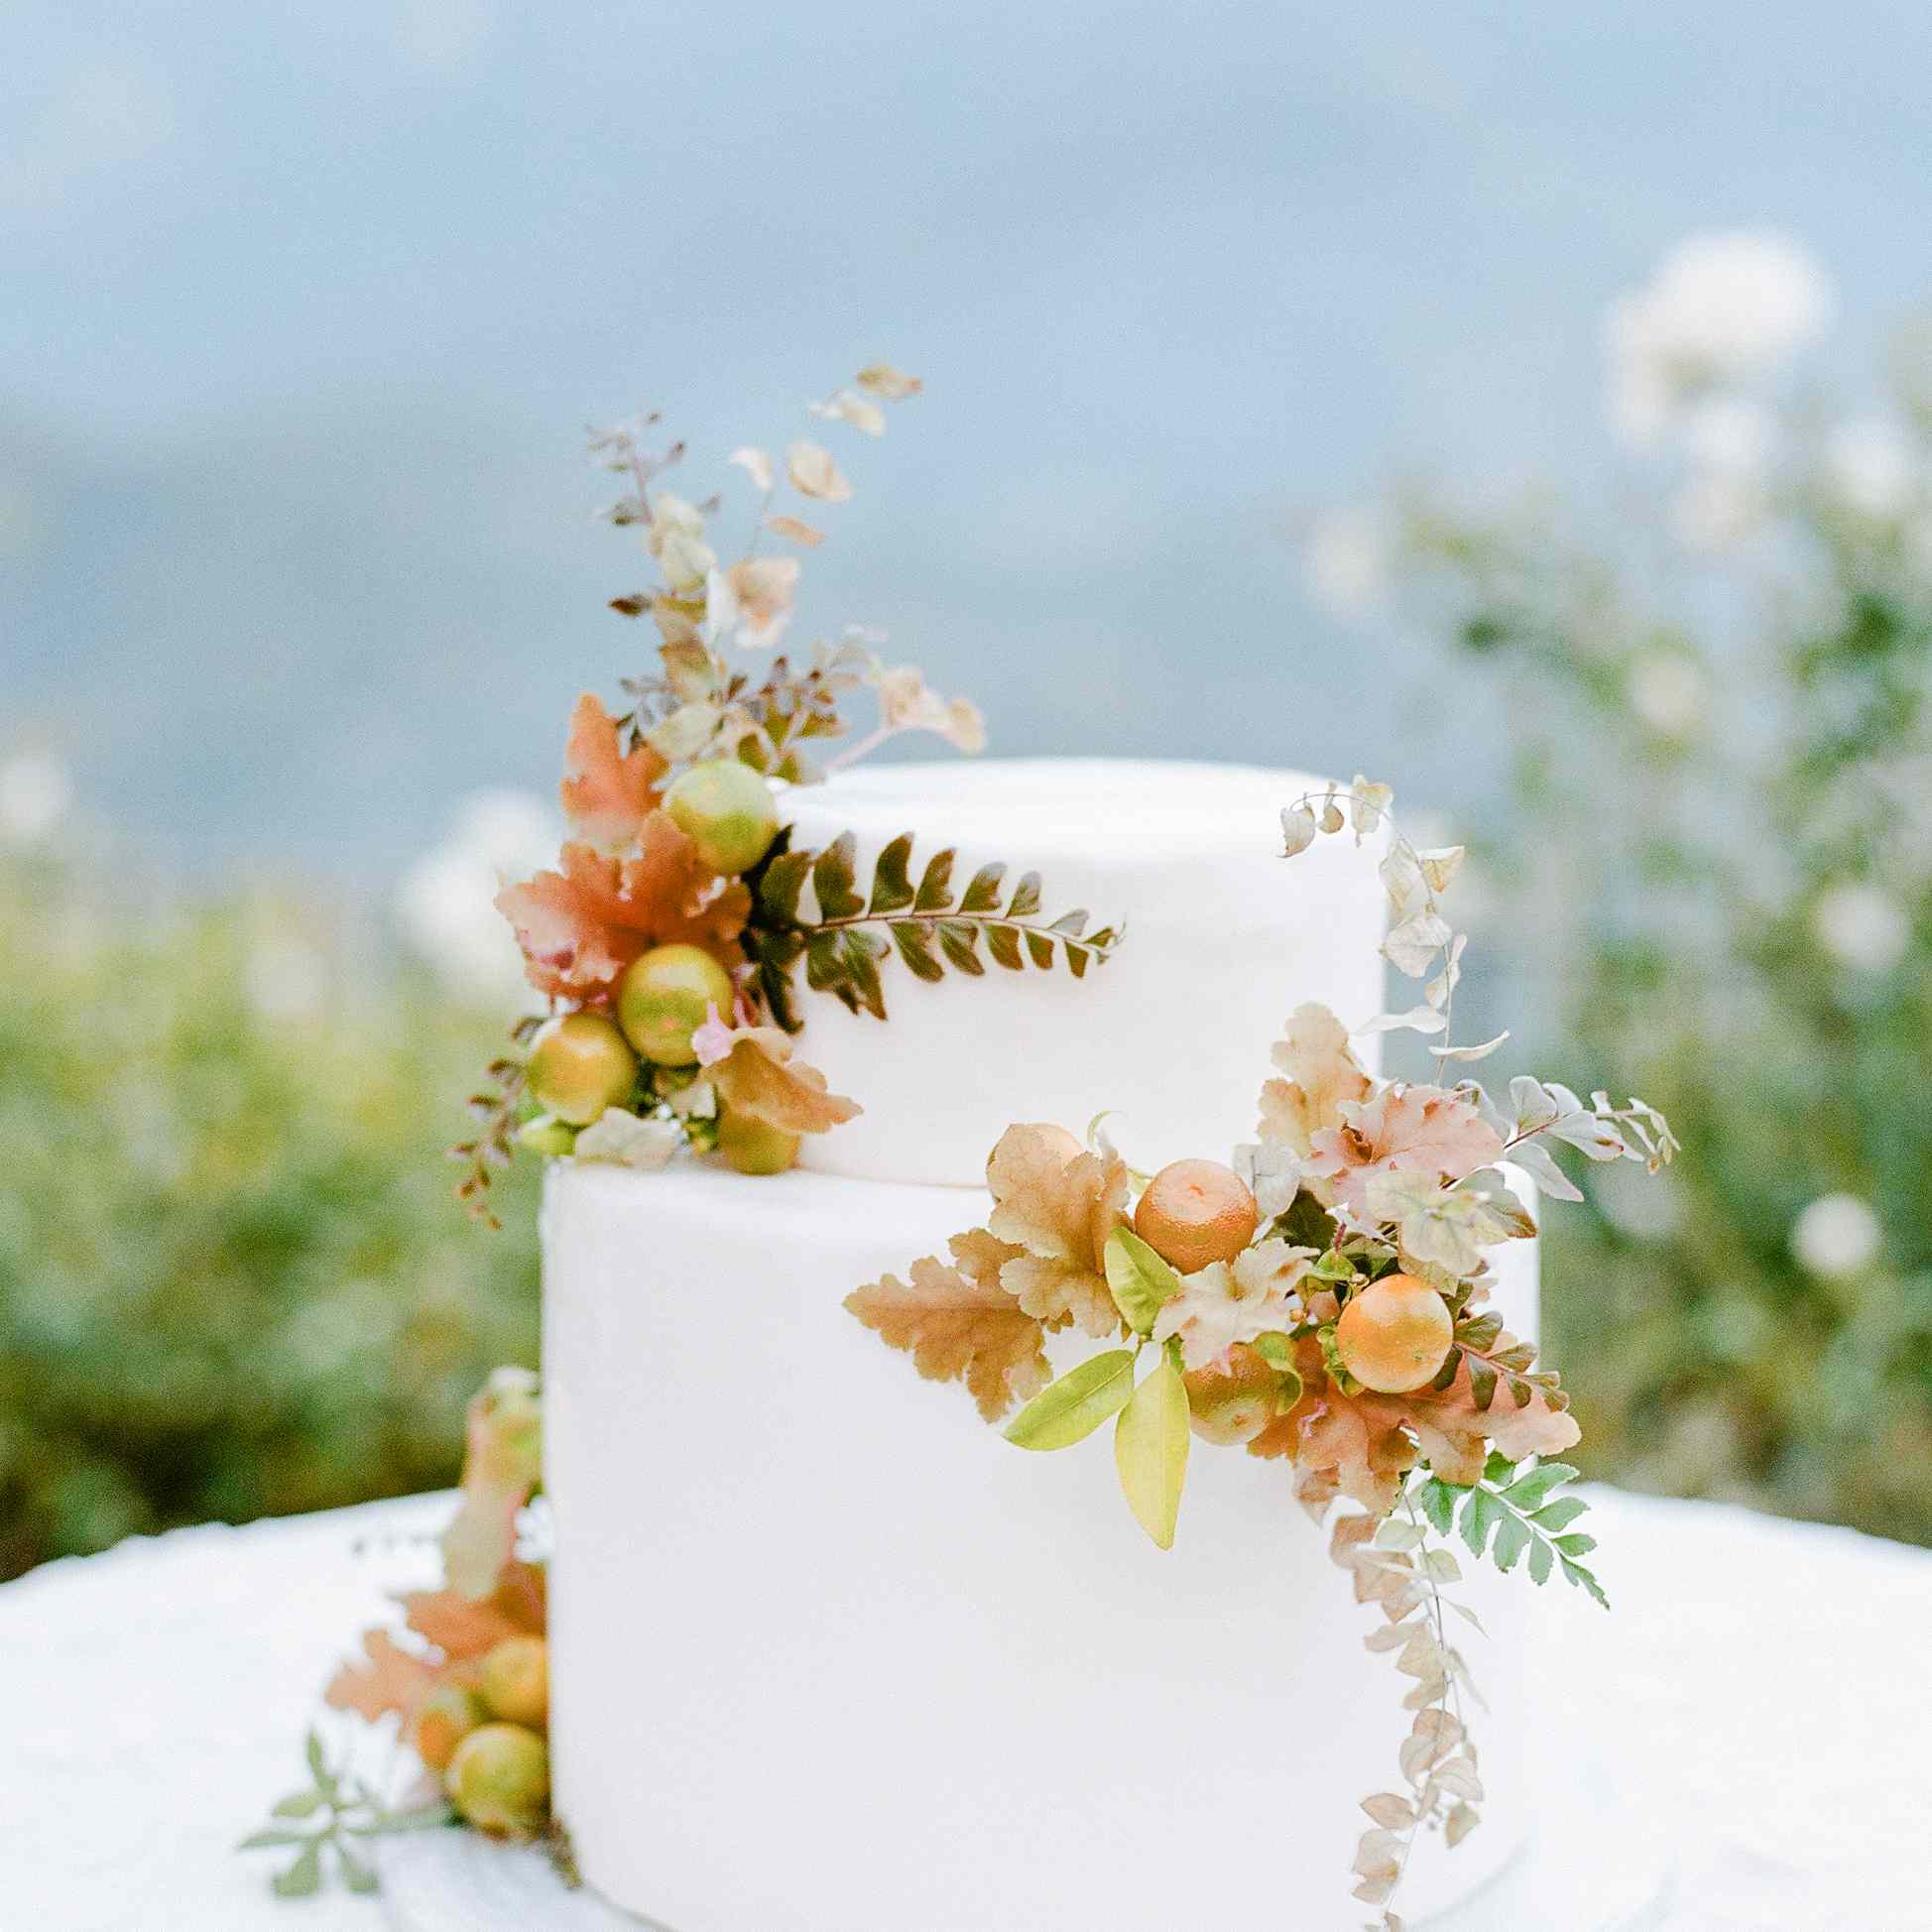 White two-tiered wedding cake with citrus accents